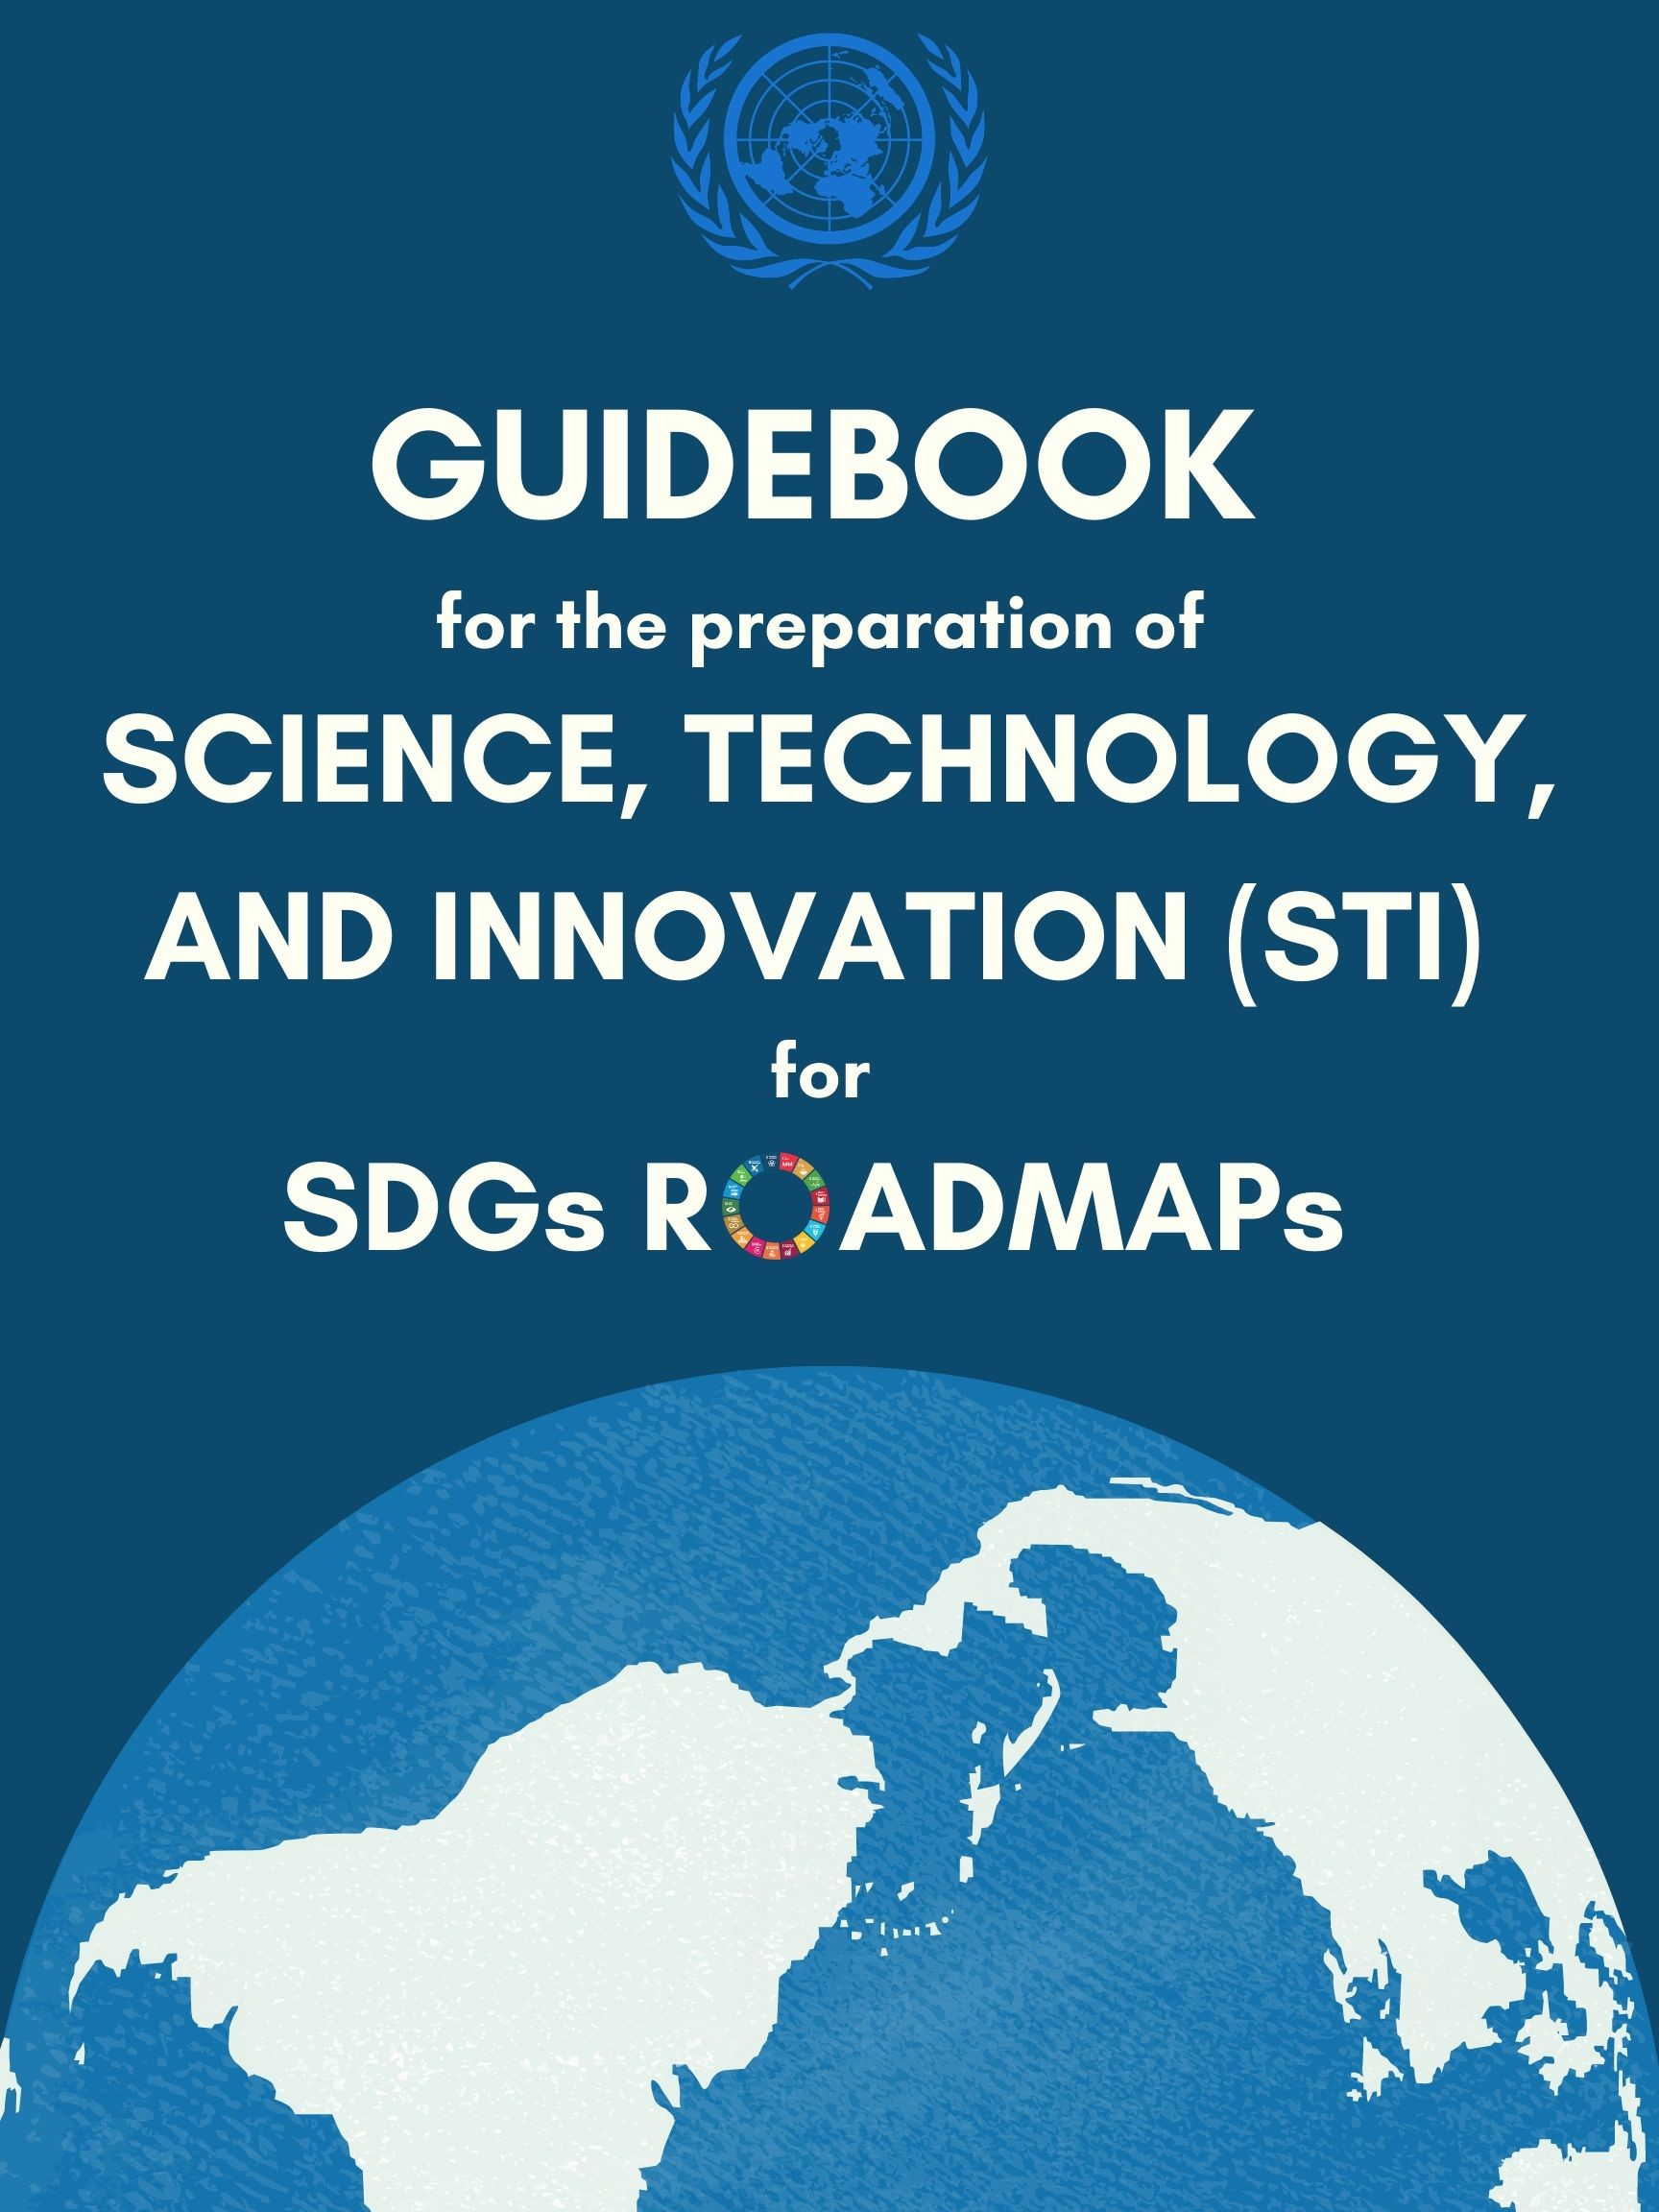 Guidebook on Development of Science, Technology and Innovation Roadmaps for the SDGs